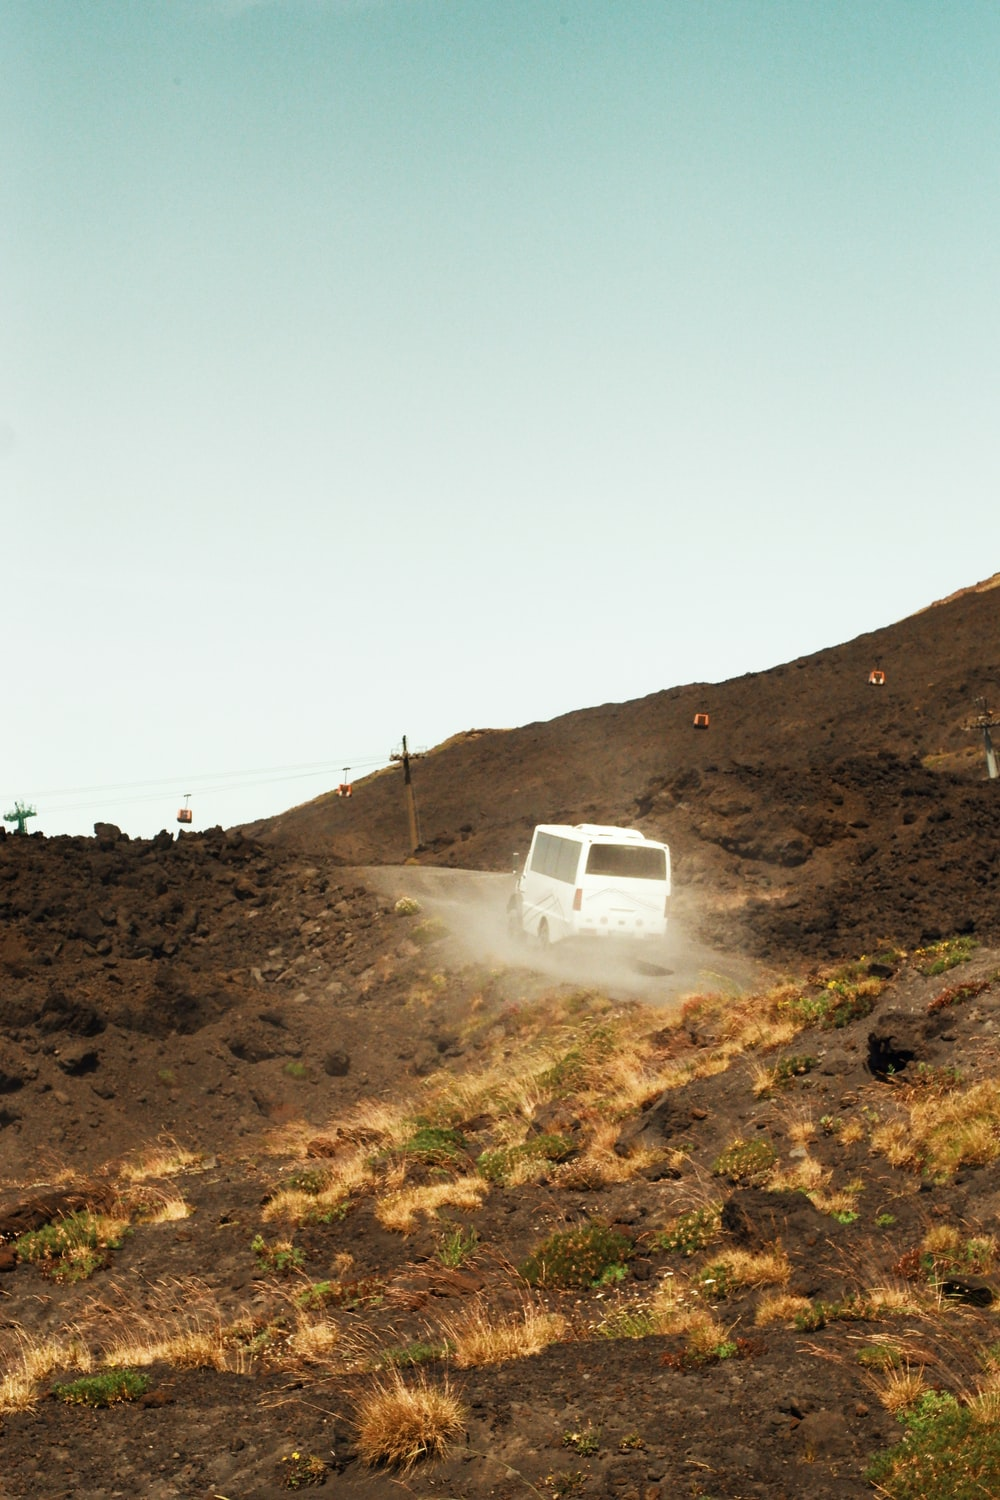 white van in a hill during daytime